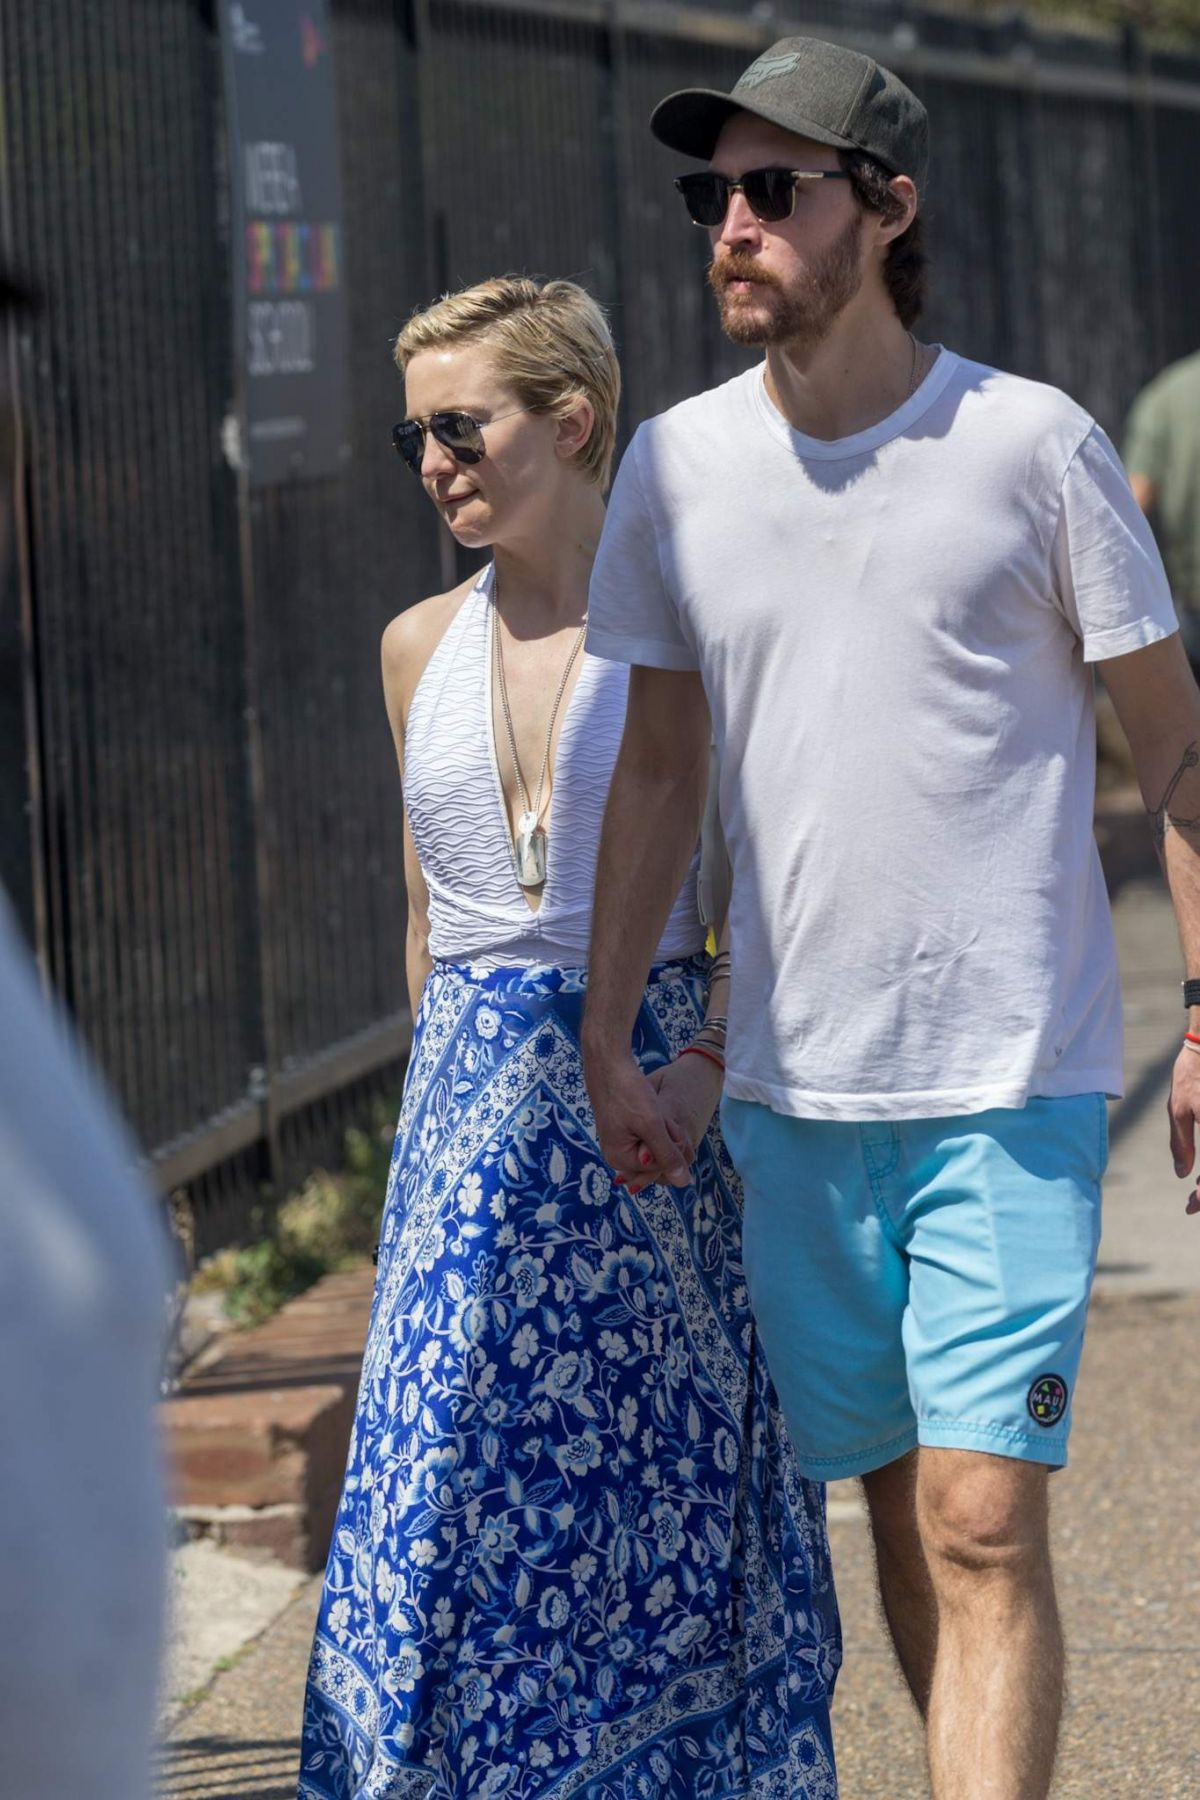 Kate Hudson And Boyfriend Enjoy An Afternoon Stroll